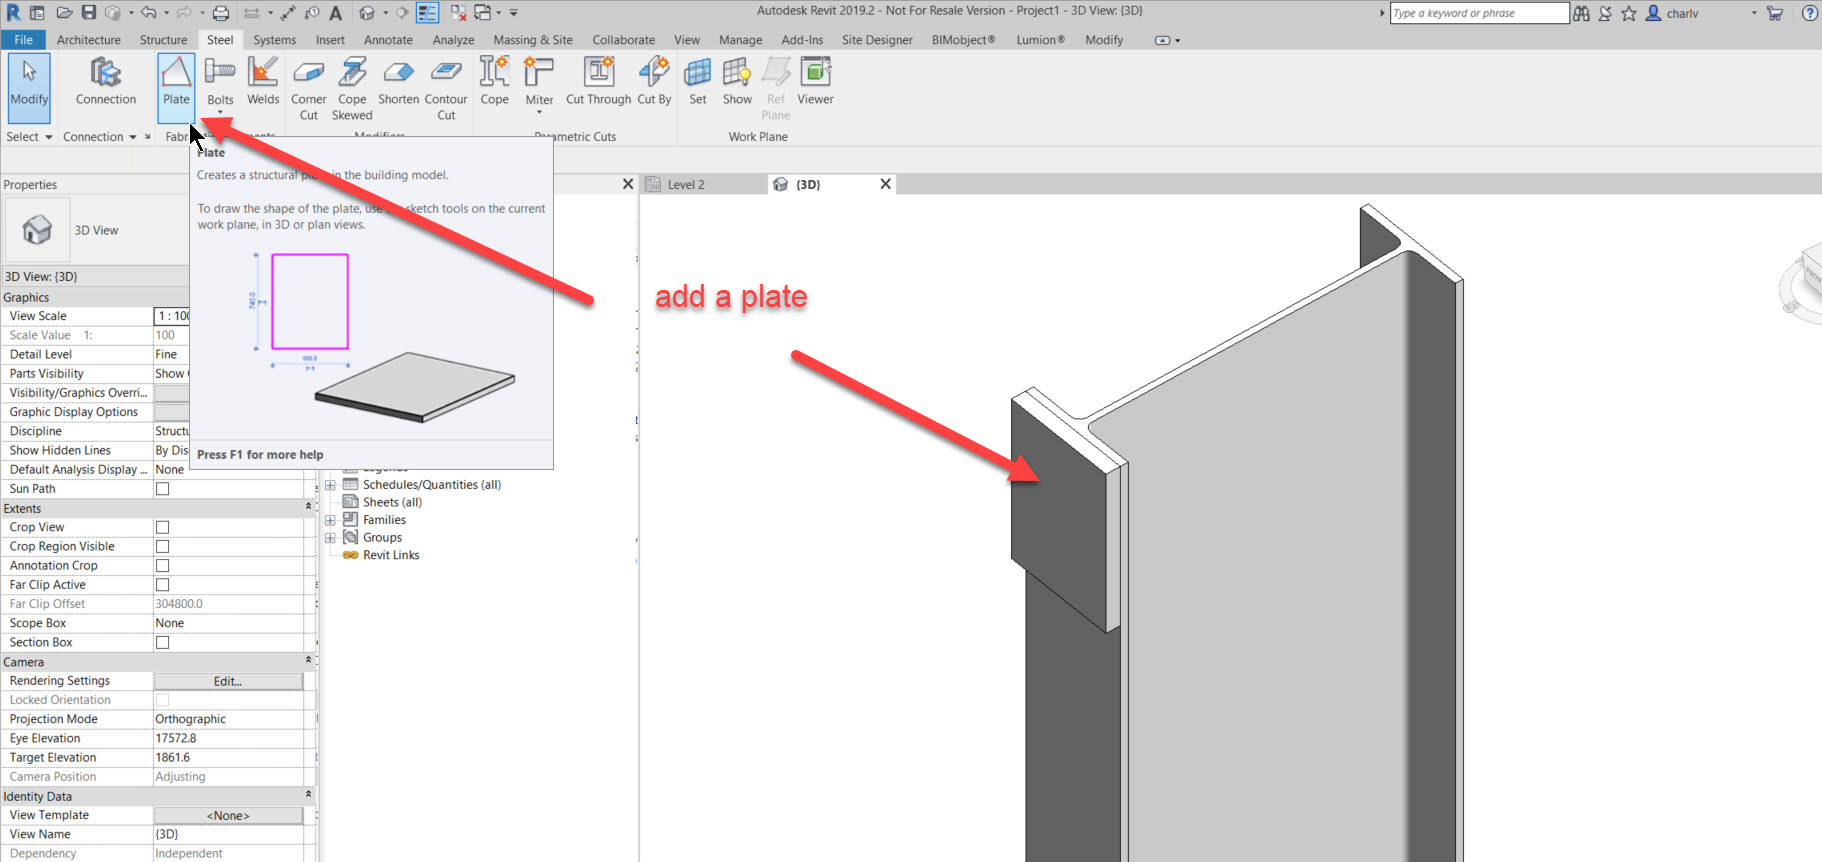 step-2-add-a-plate-to-be-fixed How to add a set of bolts in Revit